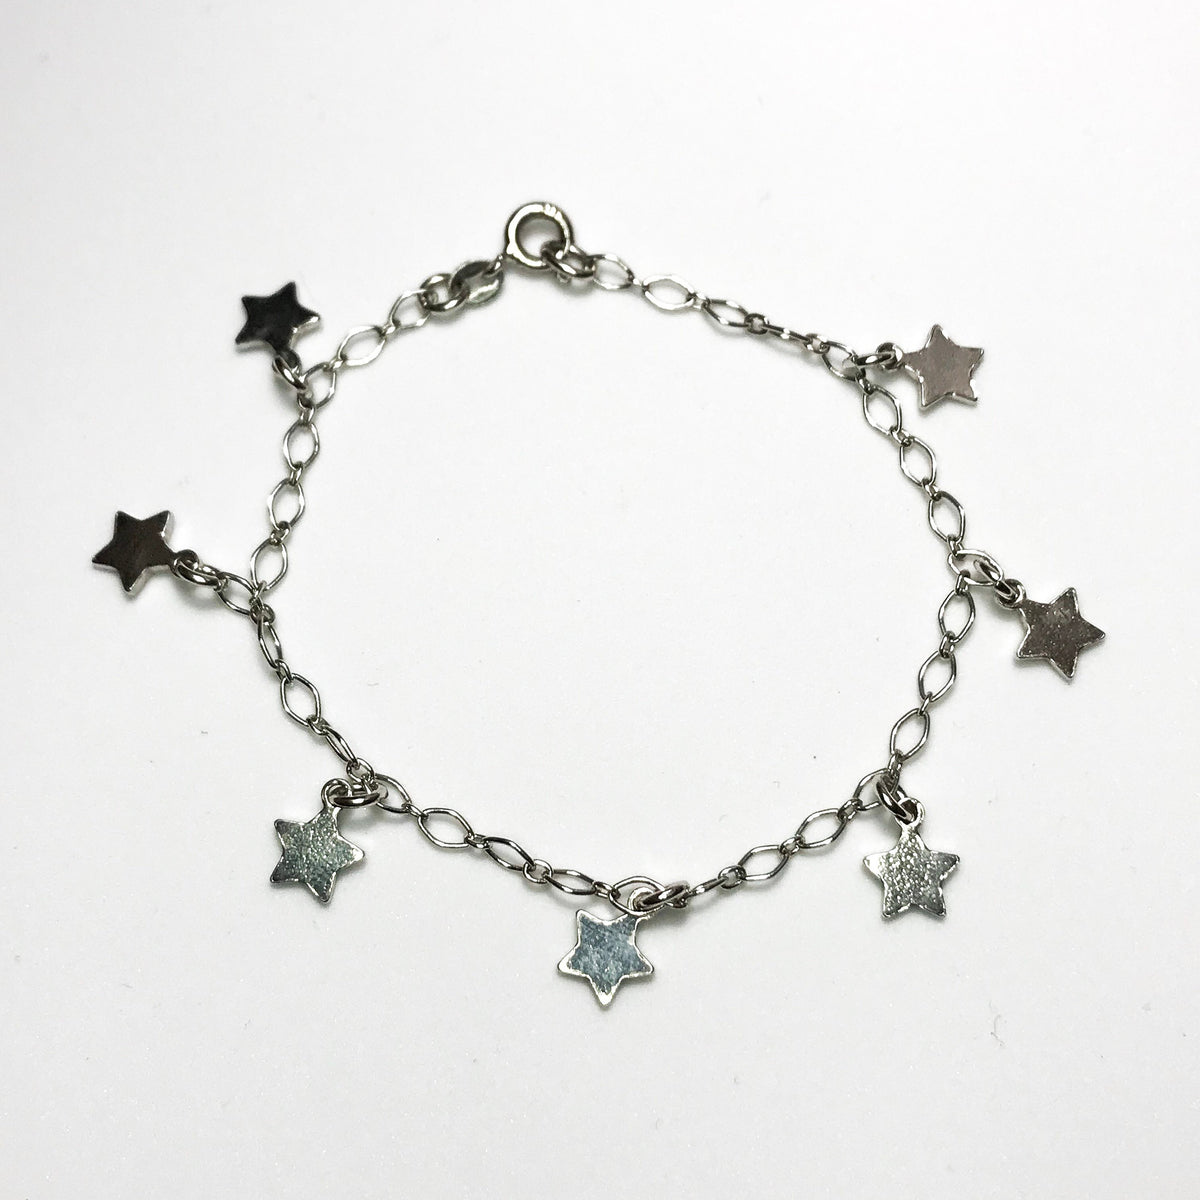 NEW .925 Sterling Silver Fill in Star Shaped Bracelet